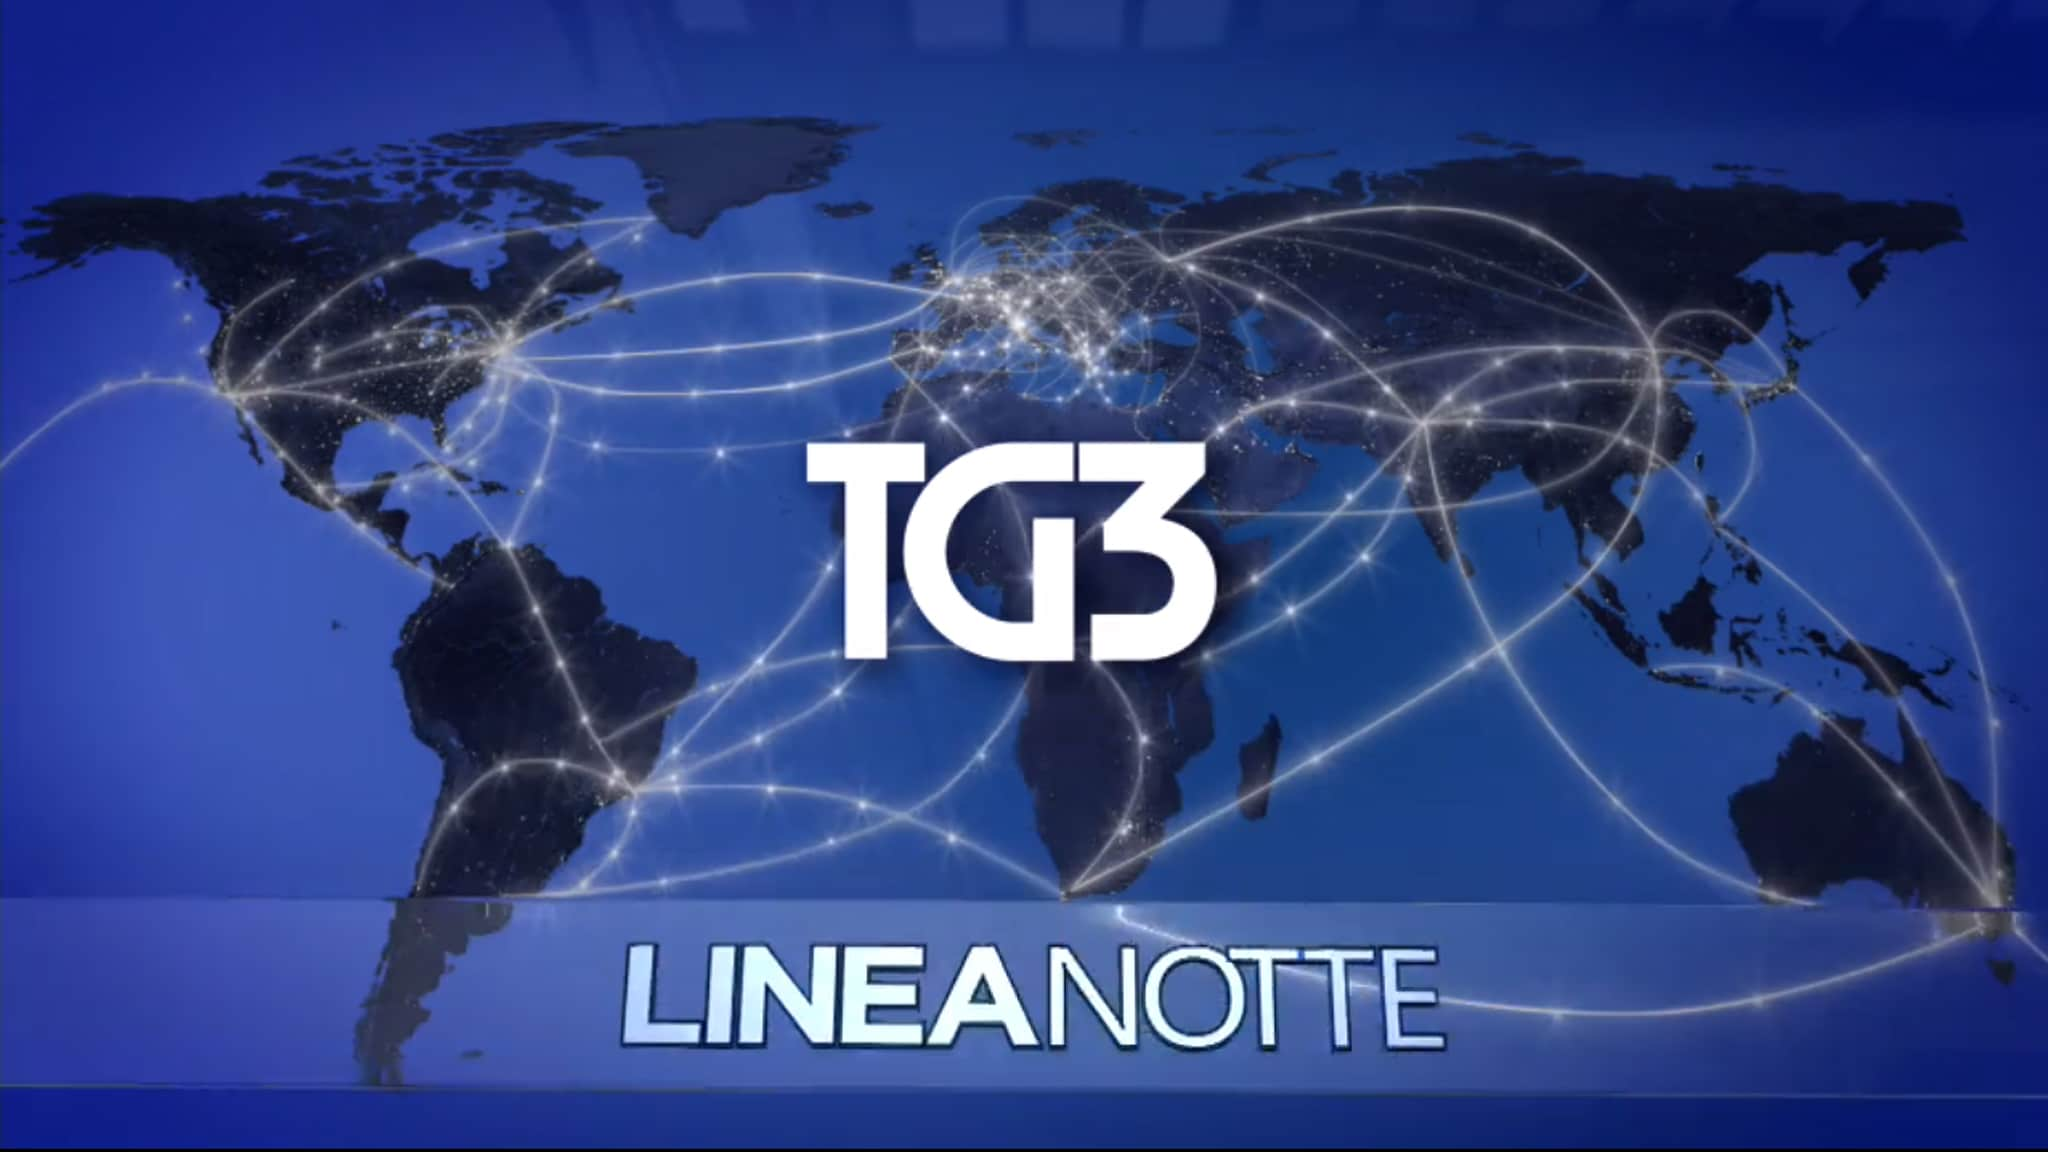 Rai 3 TG3 Linea notte estate